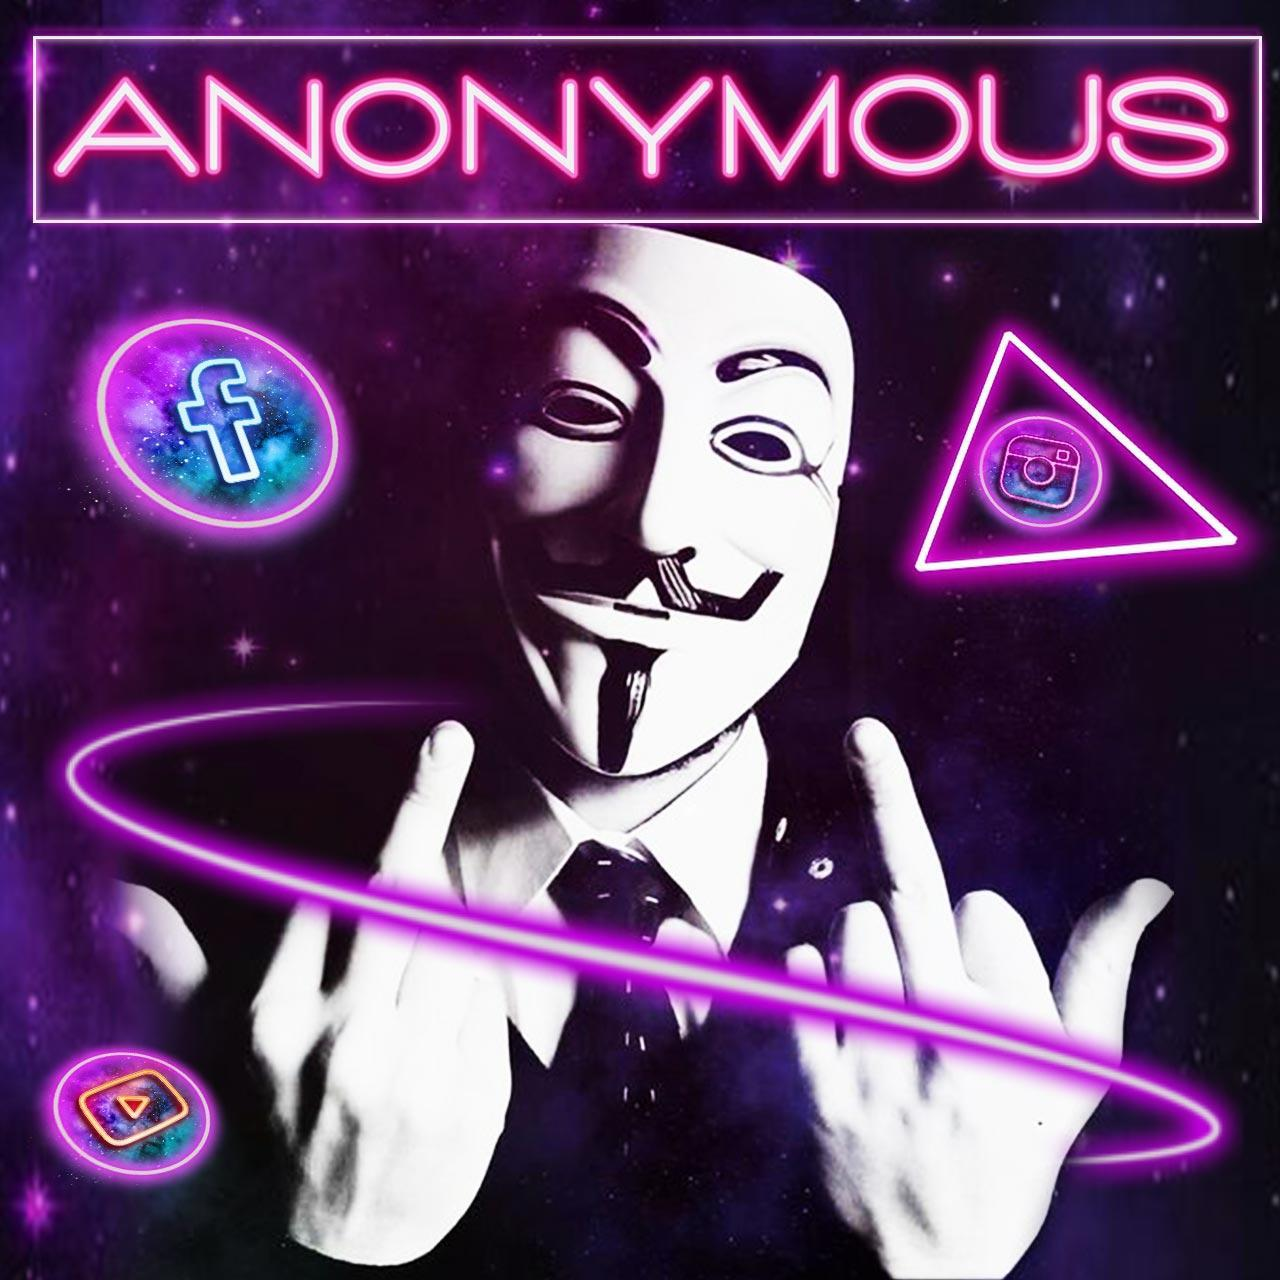 Anonymous Hacker Face Mask Themes Wallpapers For Android Apk Download